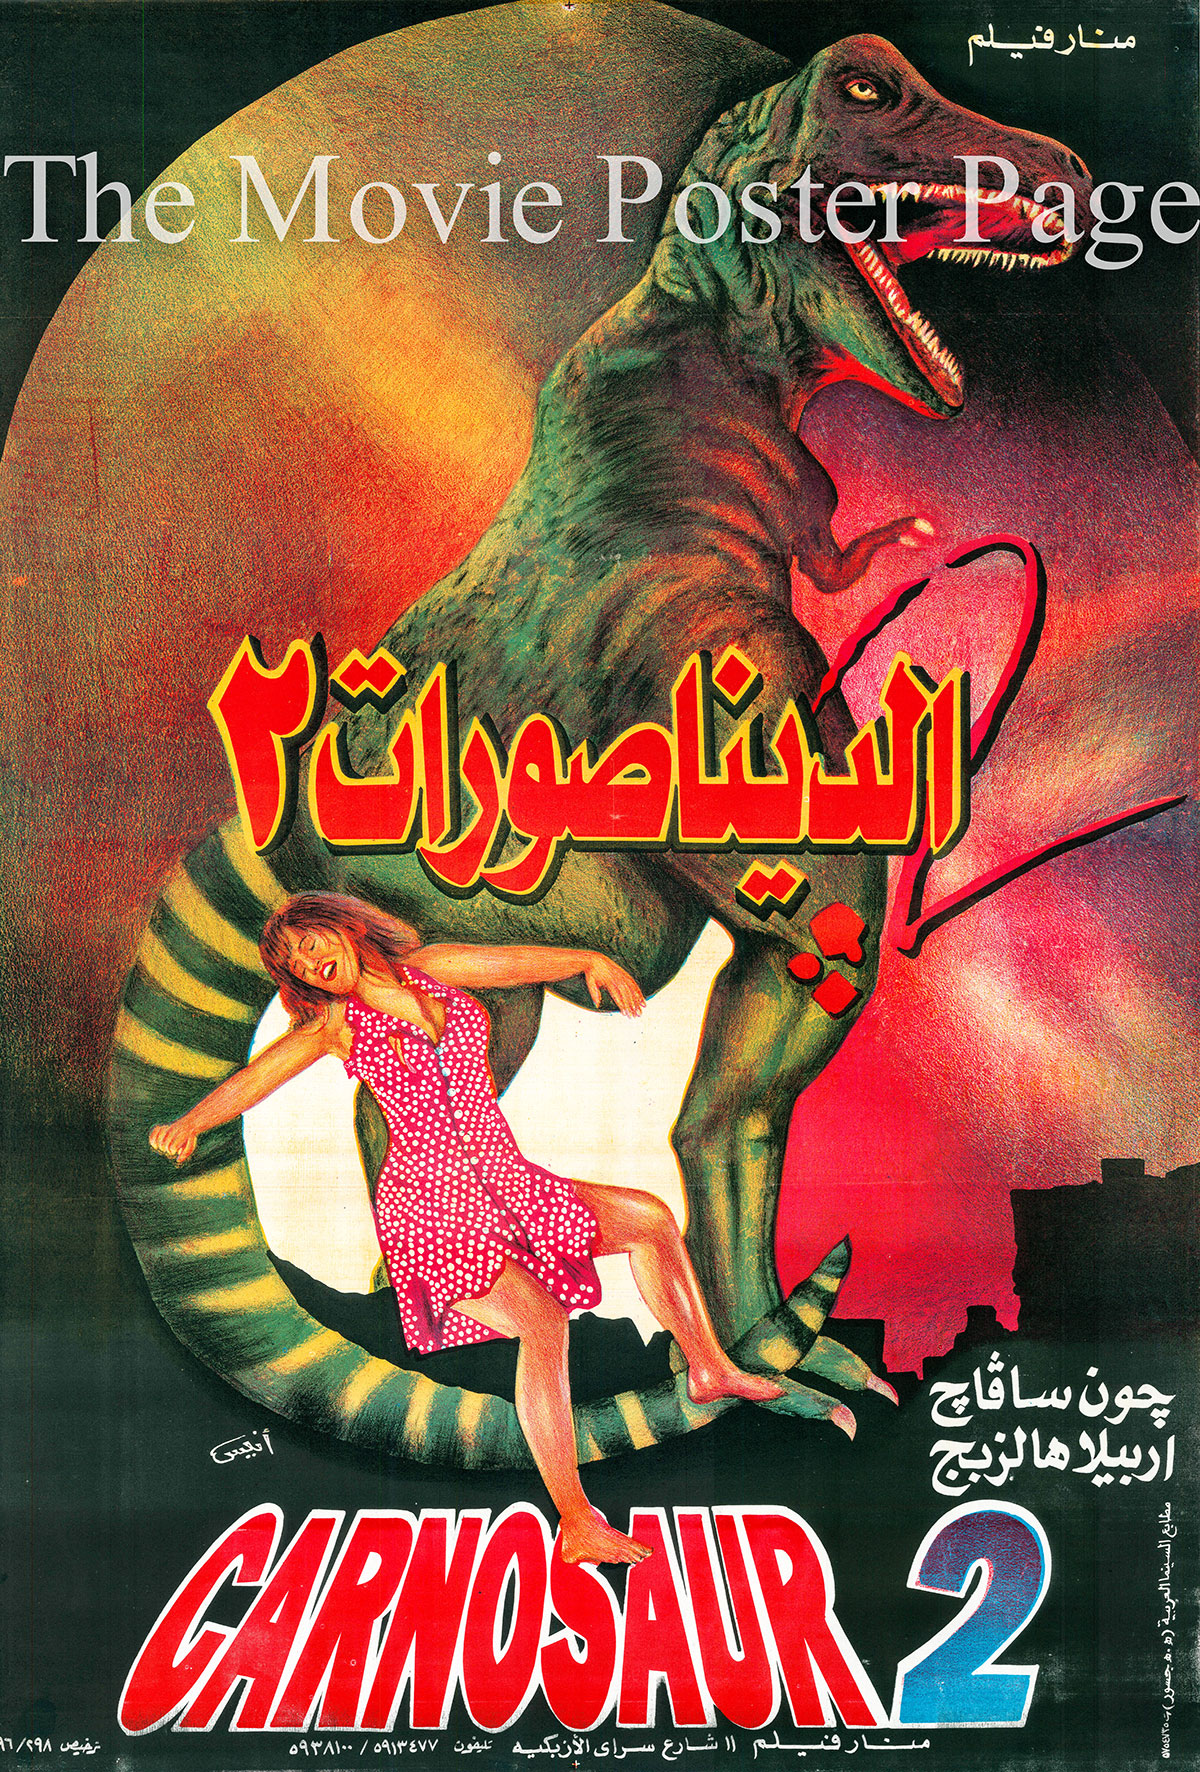 Pictured is an Egyptian promotional poster for the 1995 Louis Morneau film Carnosaur 2 starring John Savage.